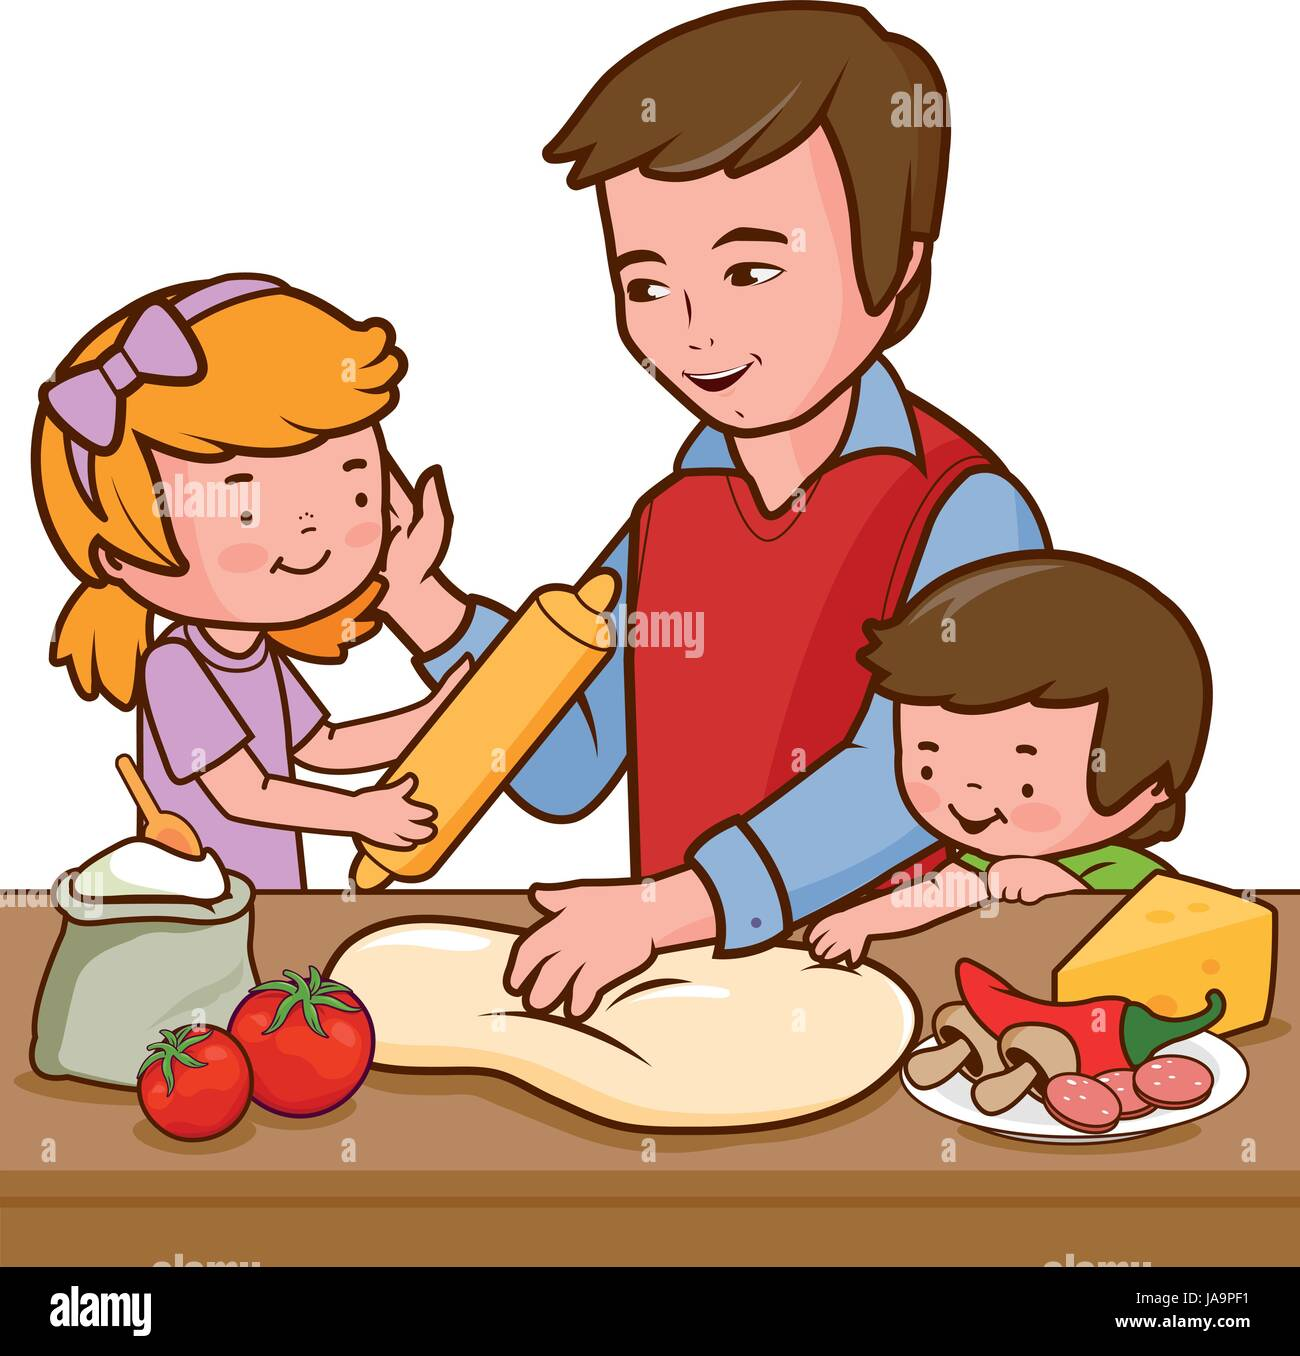 Group Of Cartoon Children Eating Pepperoni Pizza. Royalty Free Cliparts,  Vectors, And Stock Illustration. Image 109422164.